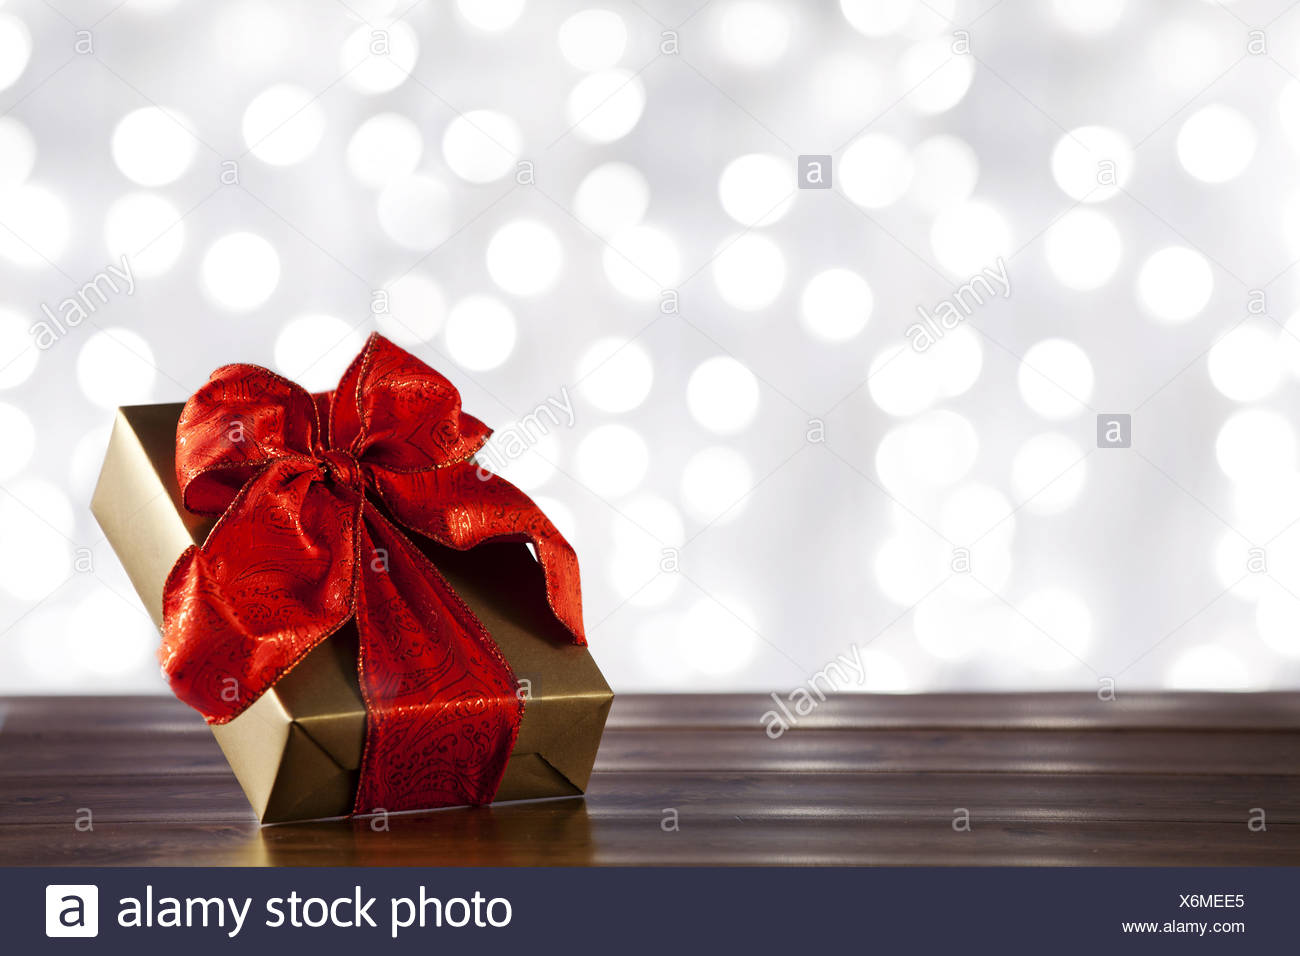 Gift Box Wrapped With Red Bow - Stock Image